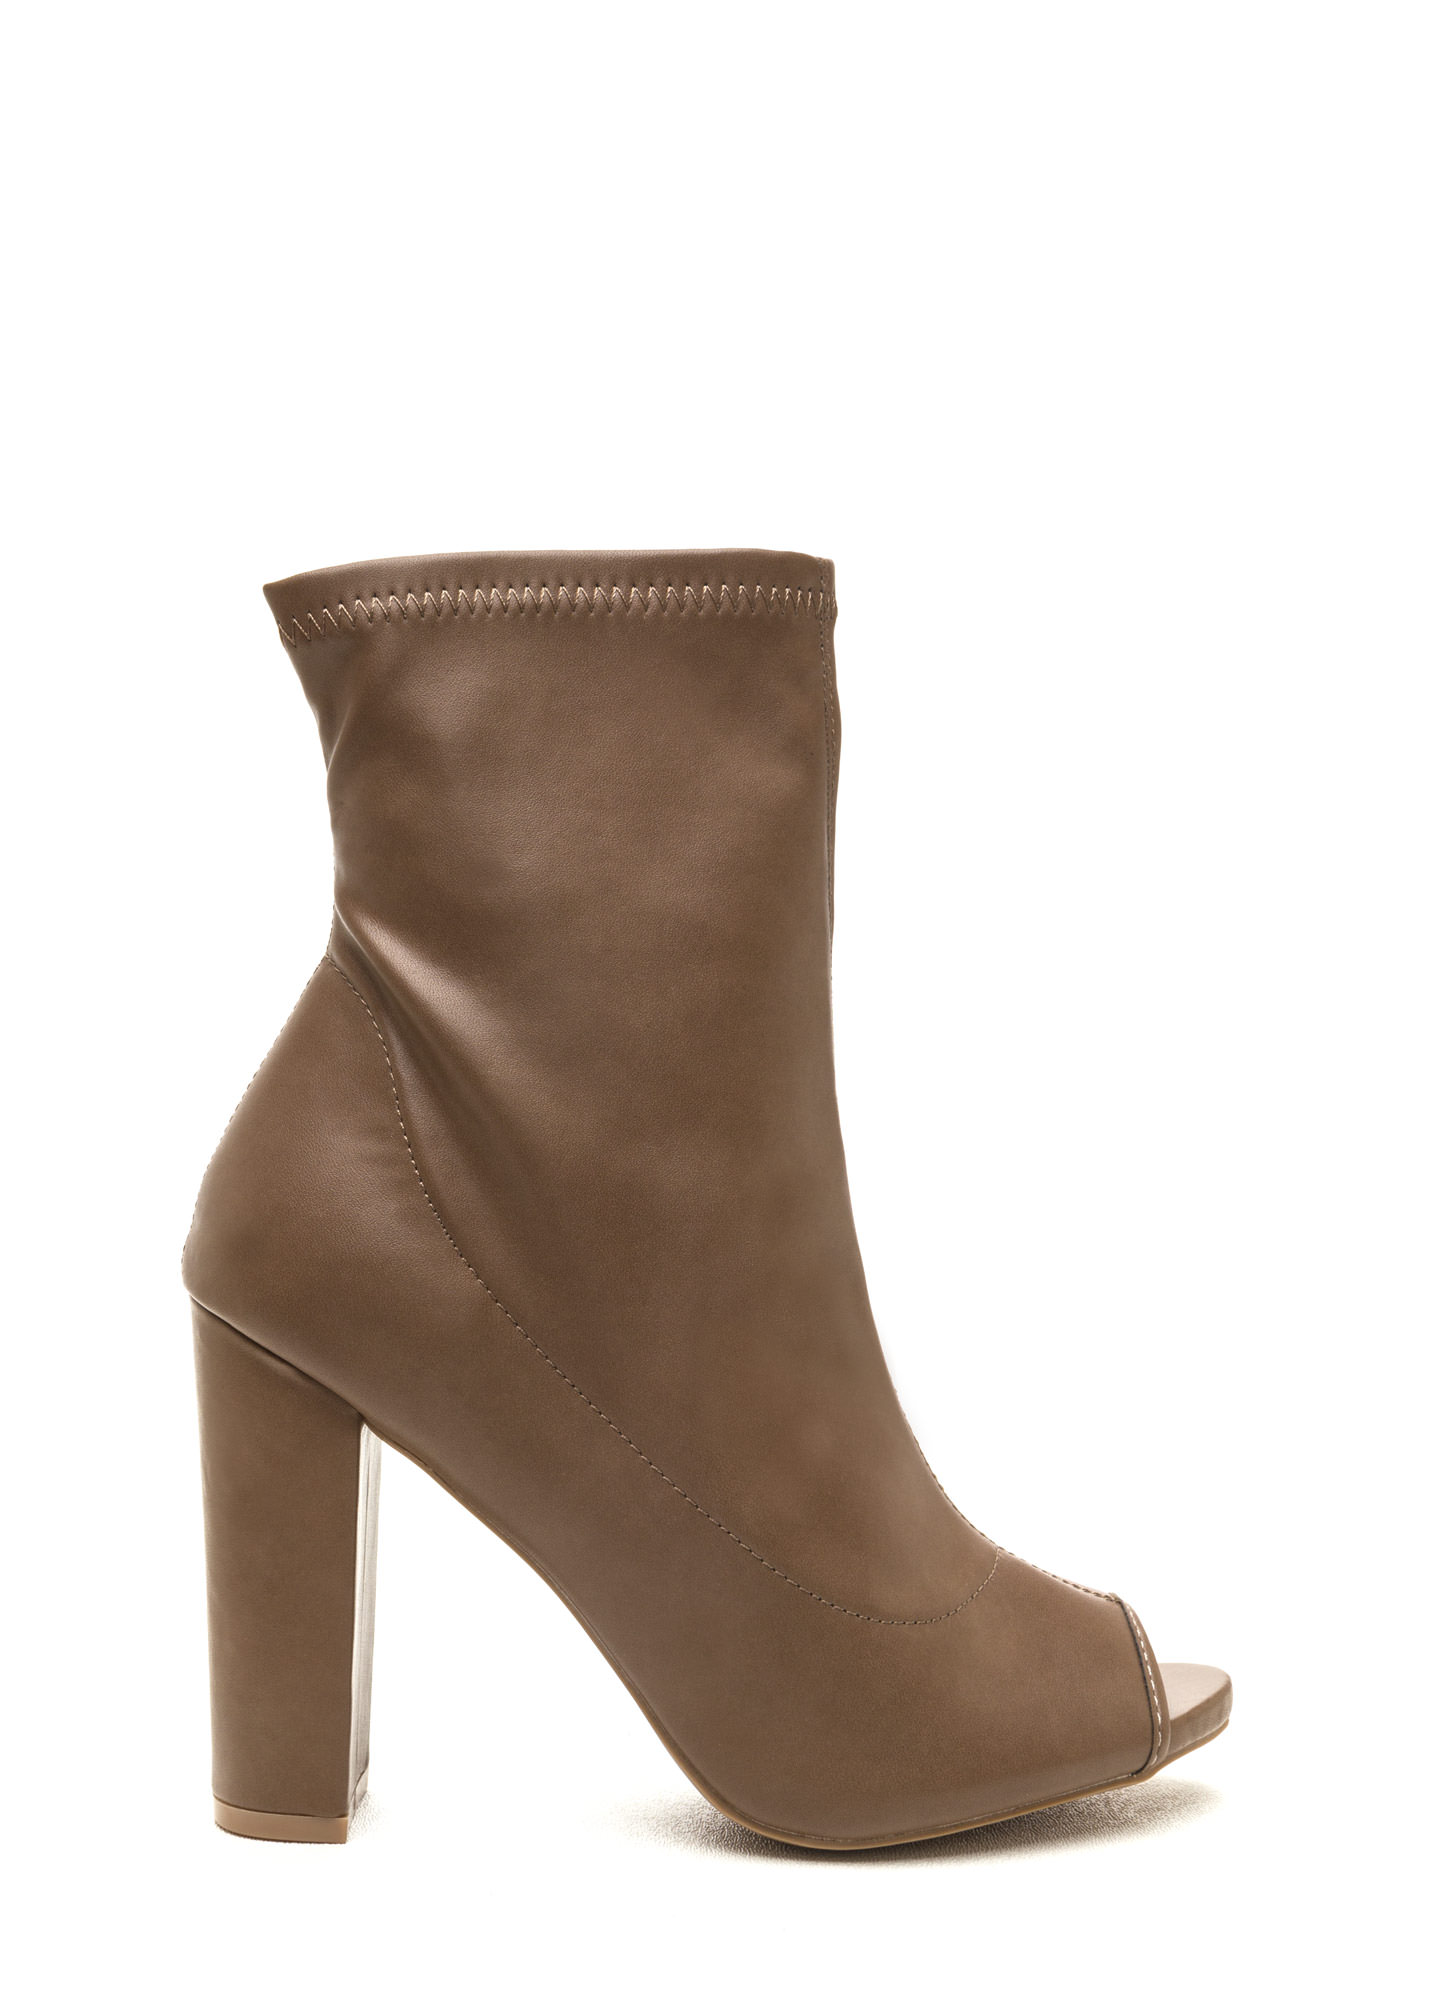 Uptown Chic Chunky Peep-Toe Booties TAUPE